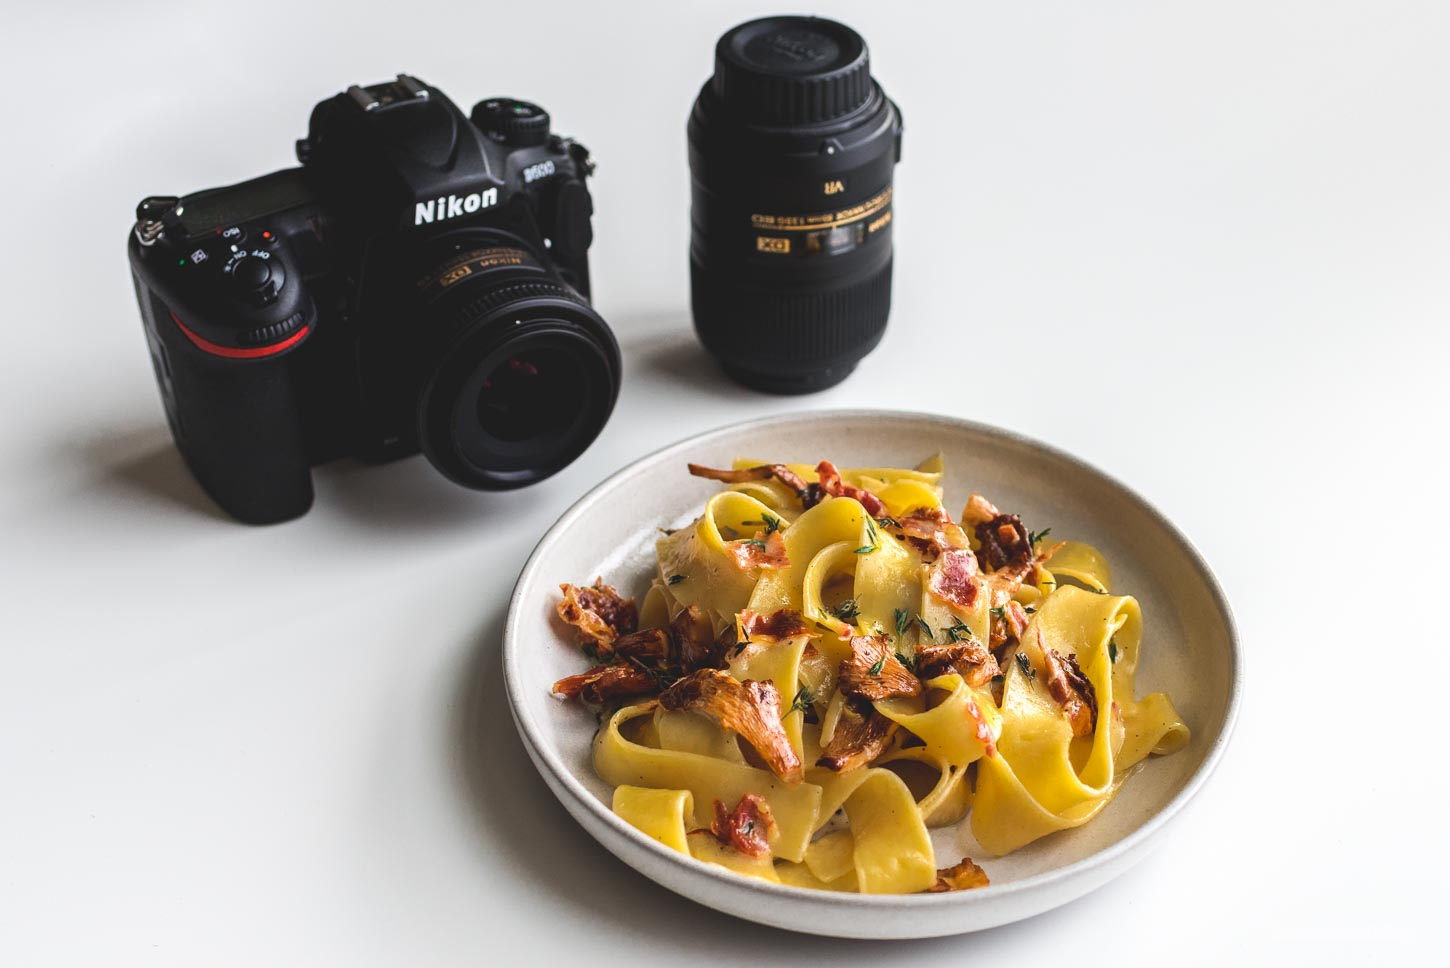 beginner's guide to food photography | www.iamafoodblog.com